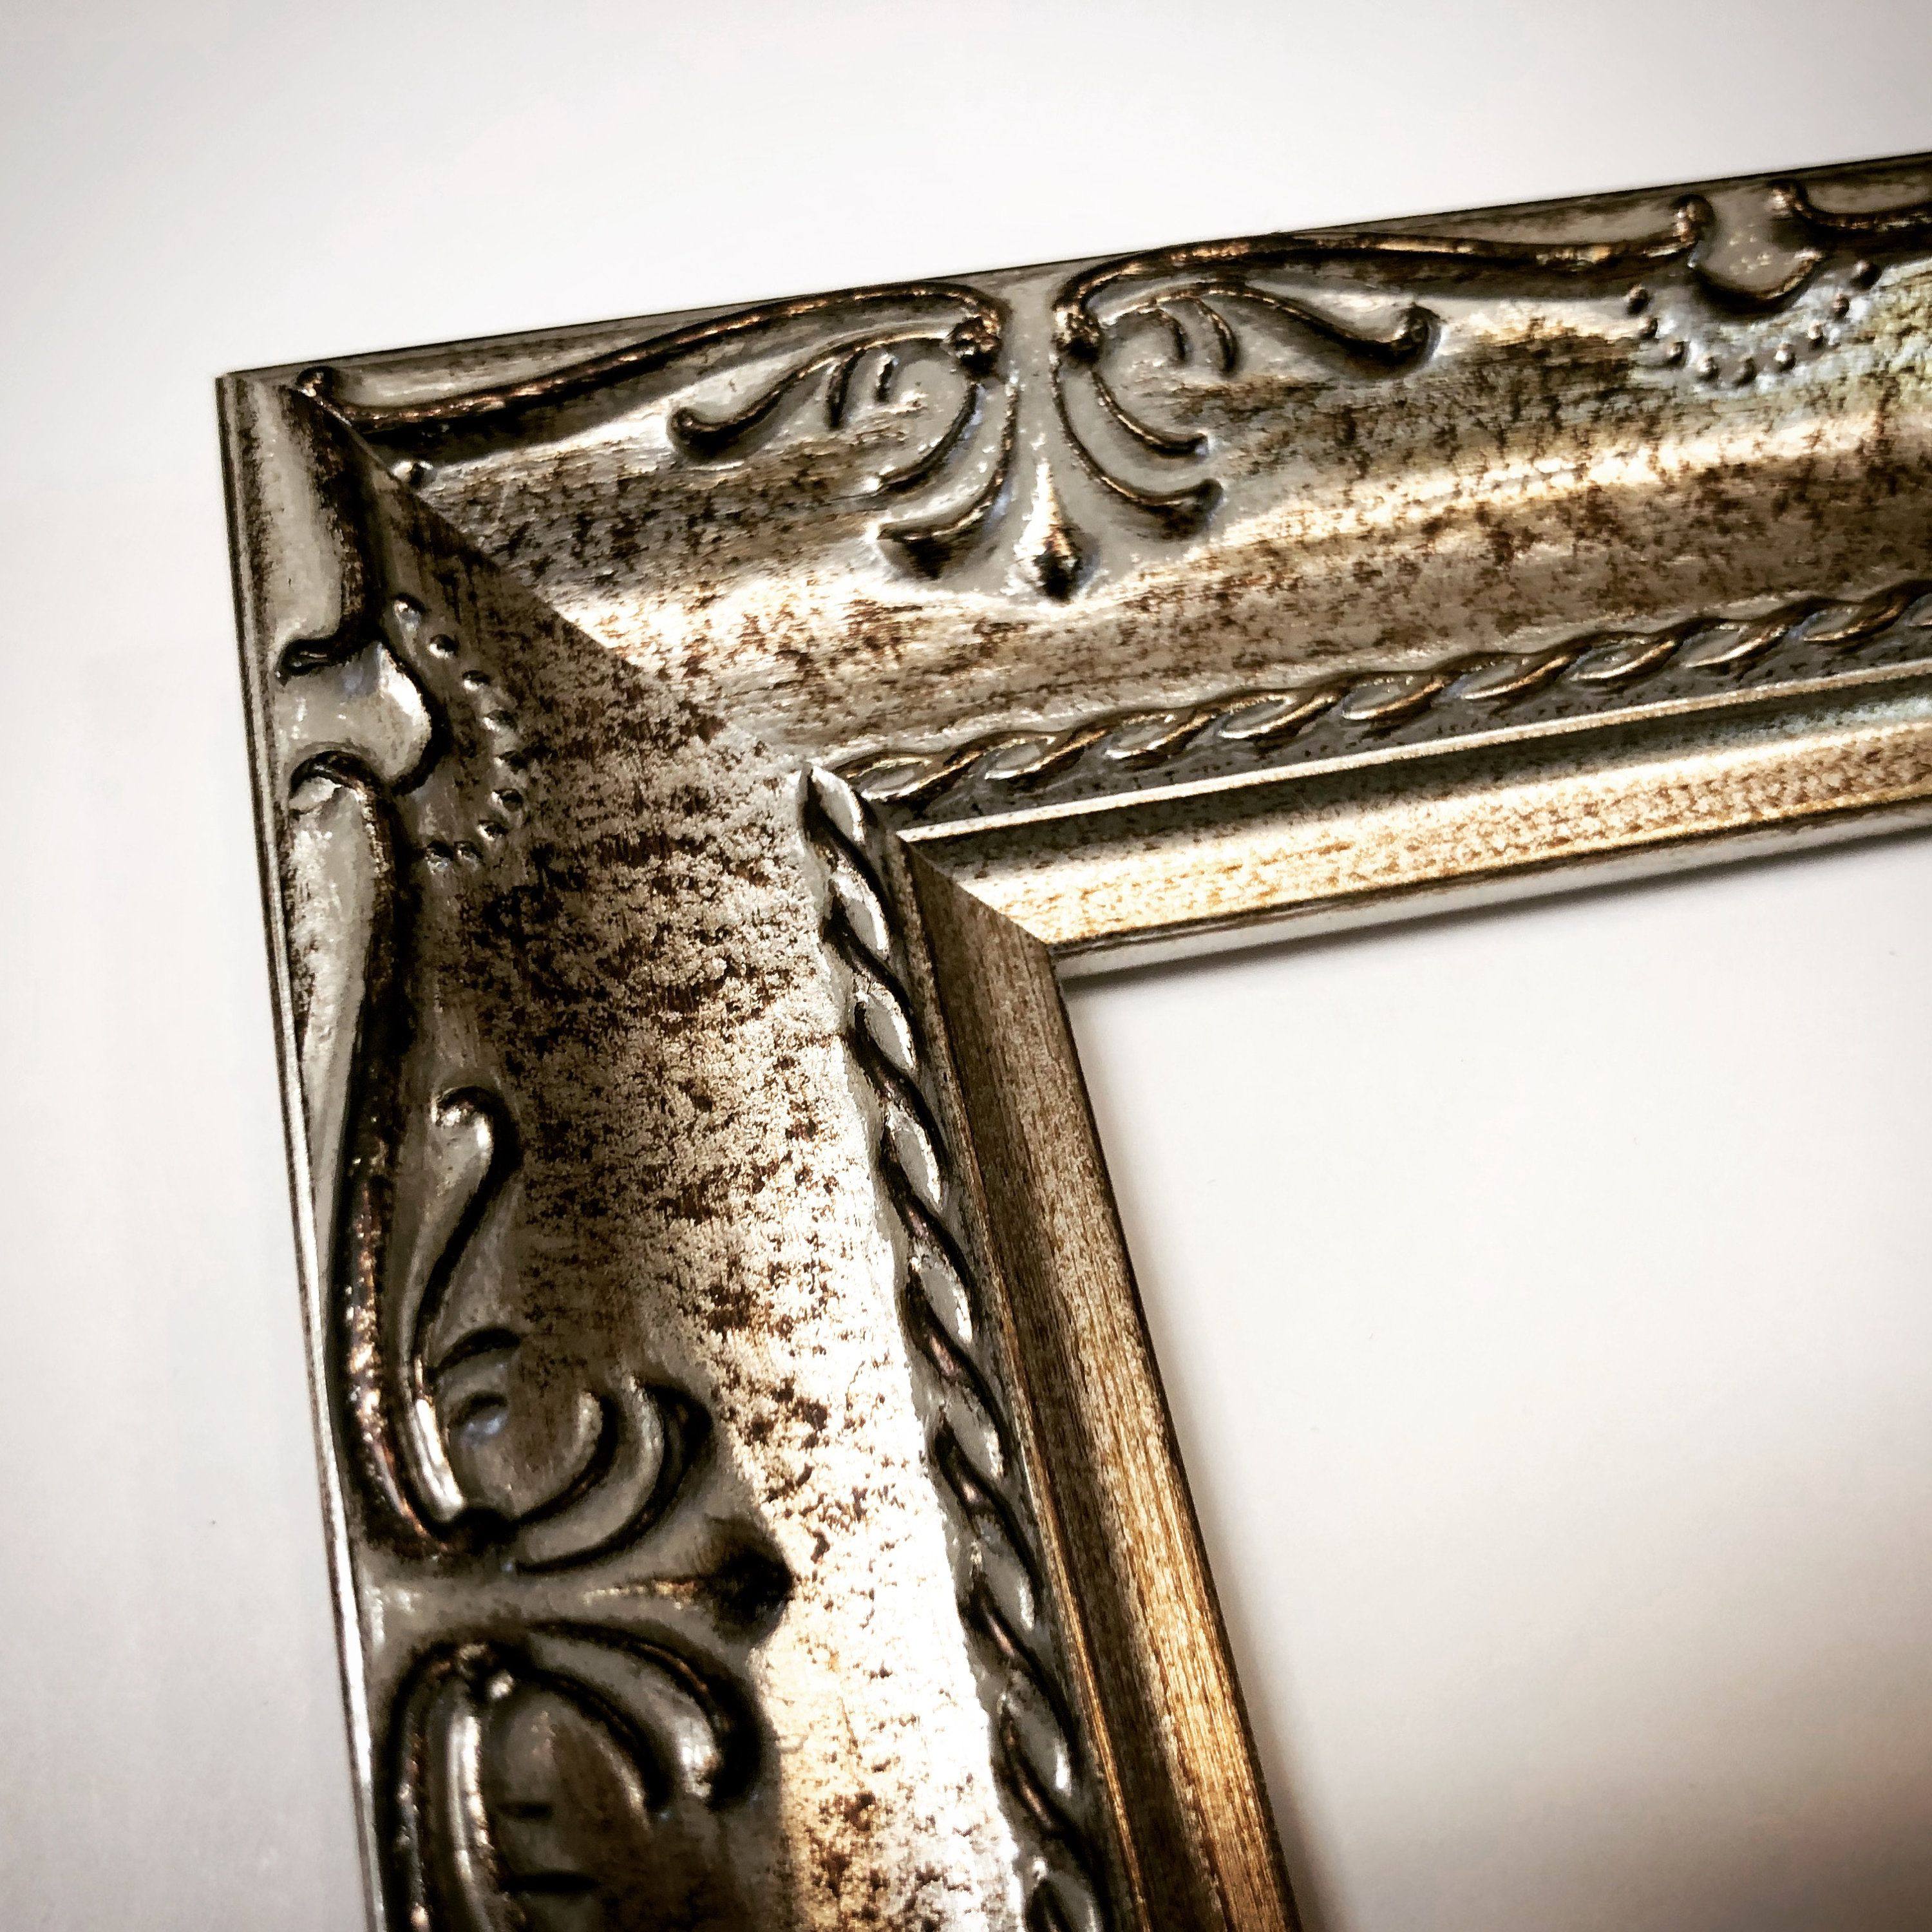 Silver Picture Frame Ornate Silver Frame Fancy Silver Frame Silver Wedding Frame Silver Frame 8x10 Silver Frames 5x7 Silver Frame Custom 4x6 Silver Picture Frames Ornate Picture Frames Wedding Frames